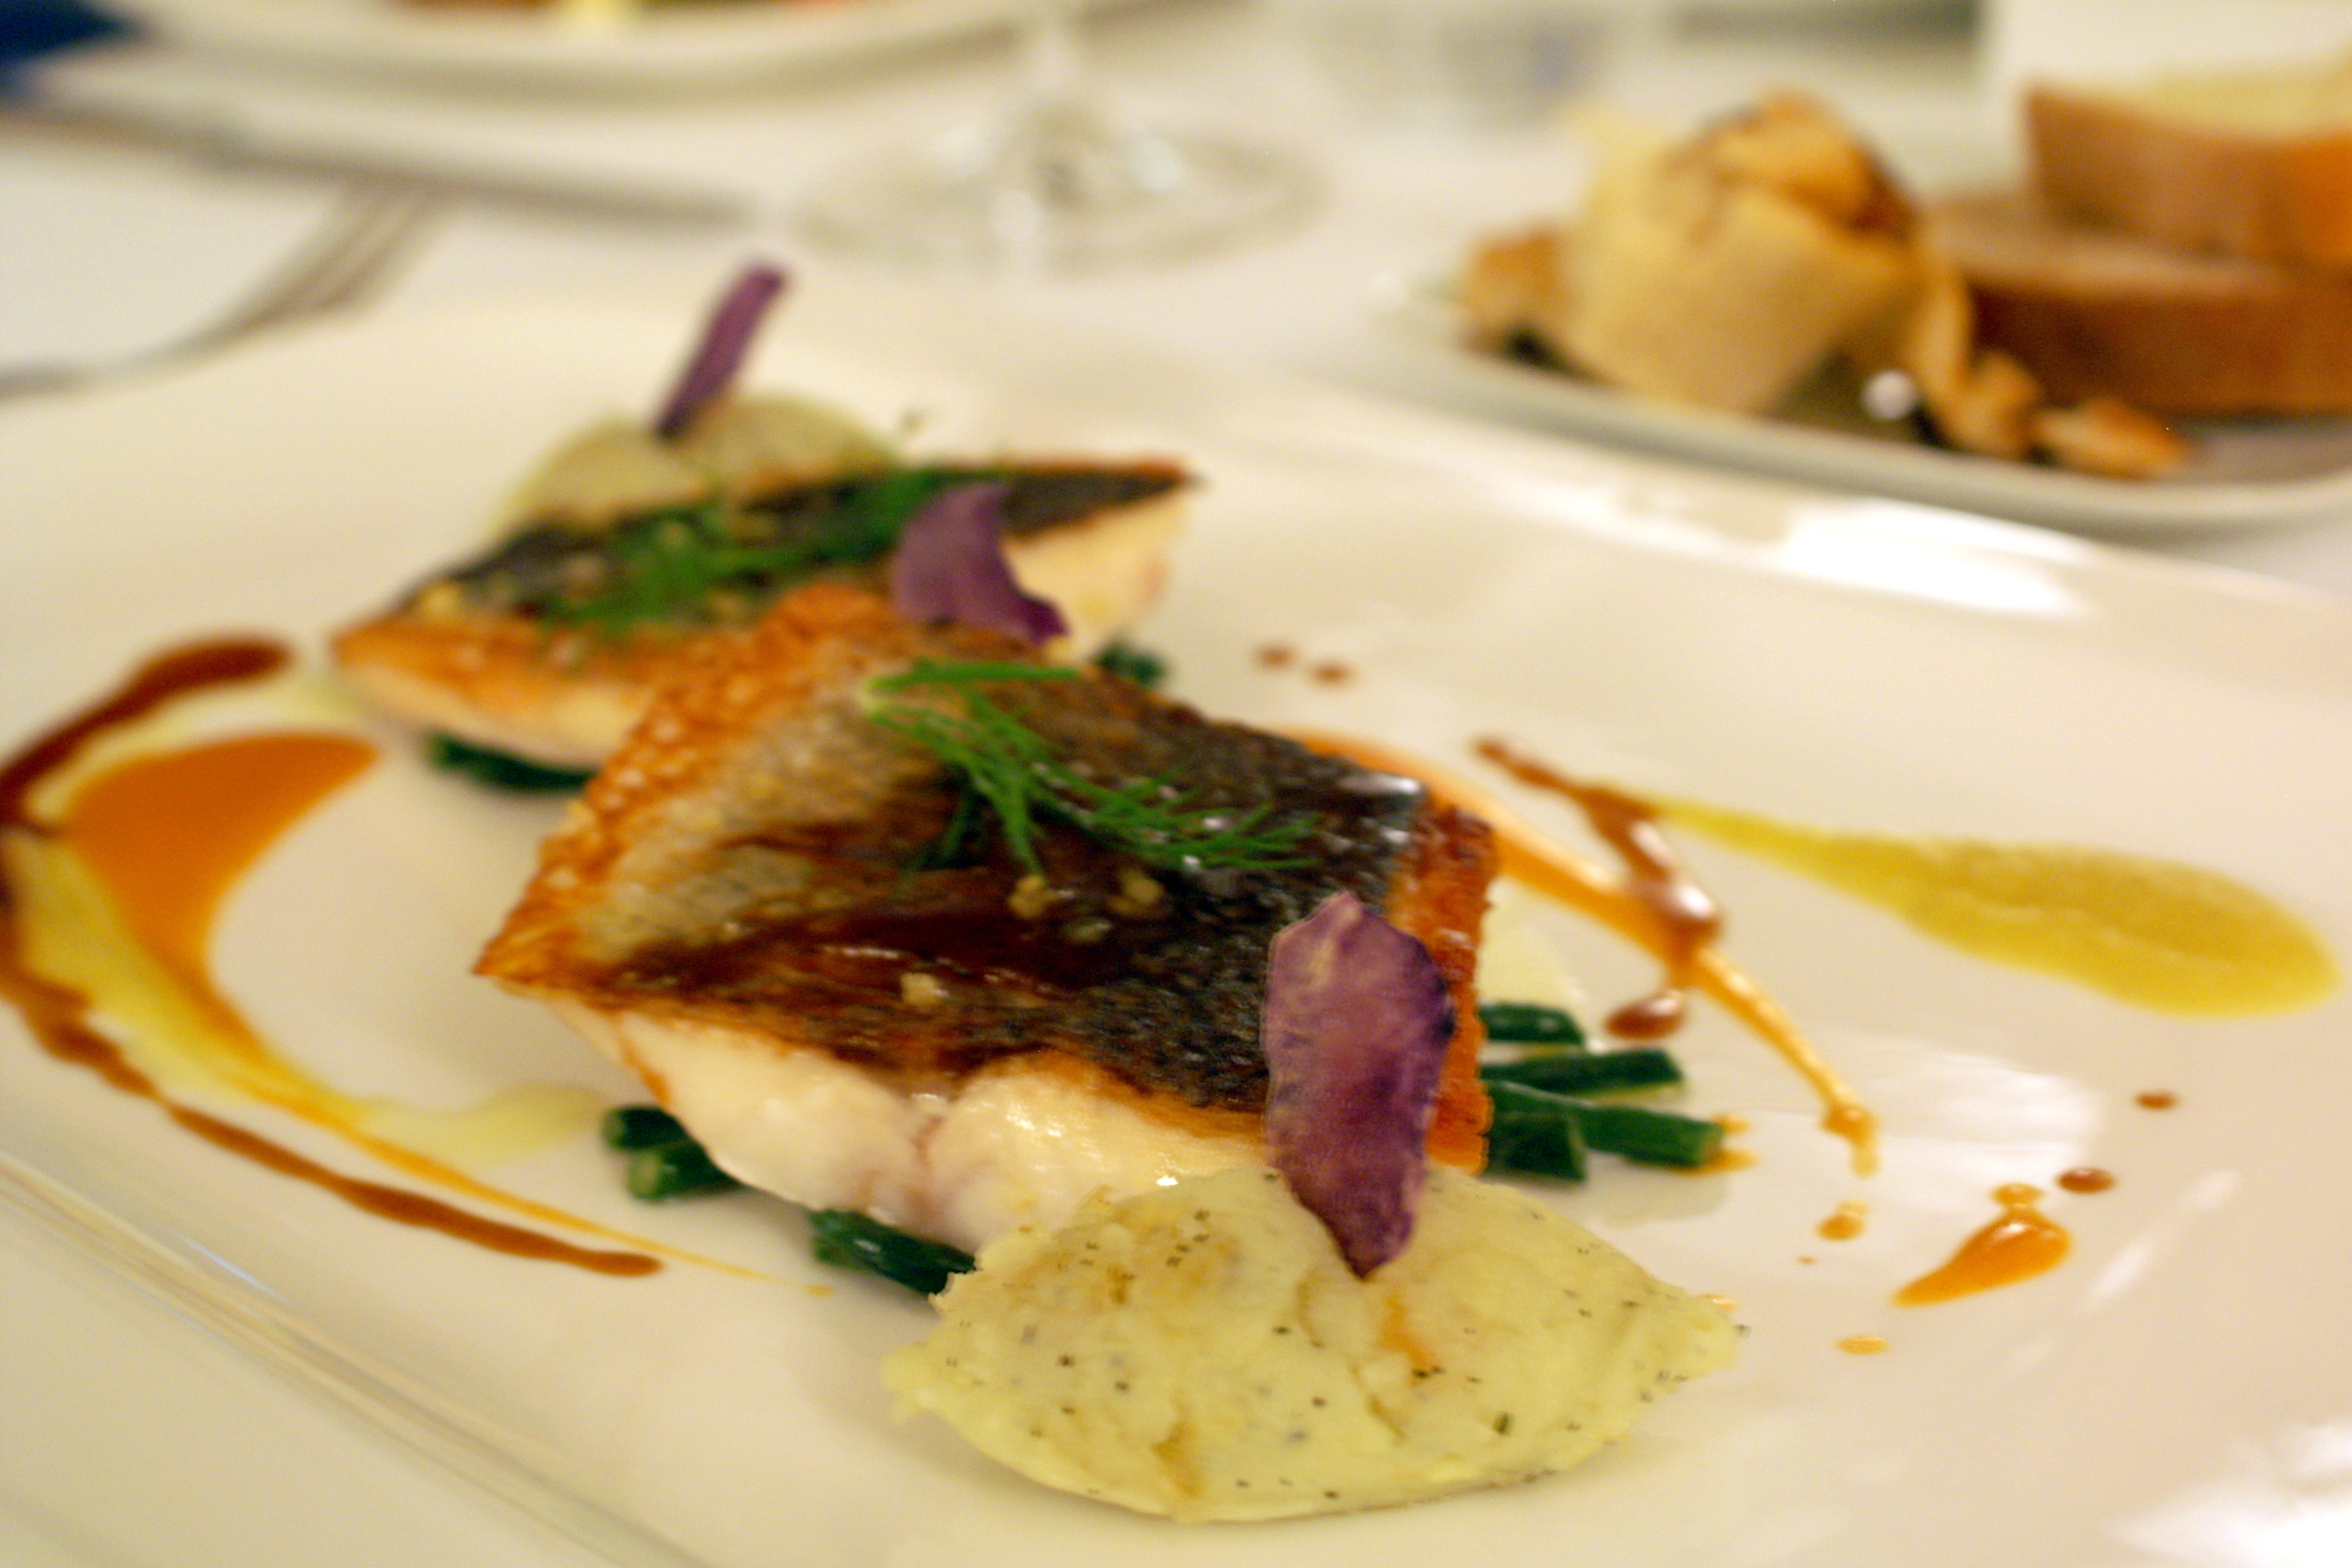 Sea bass cooked on the skin with salty lemon at La Sommità Relais hotel in Ostuni, Puglia